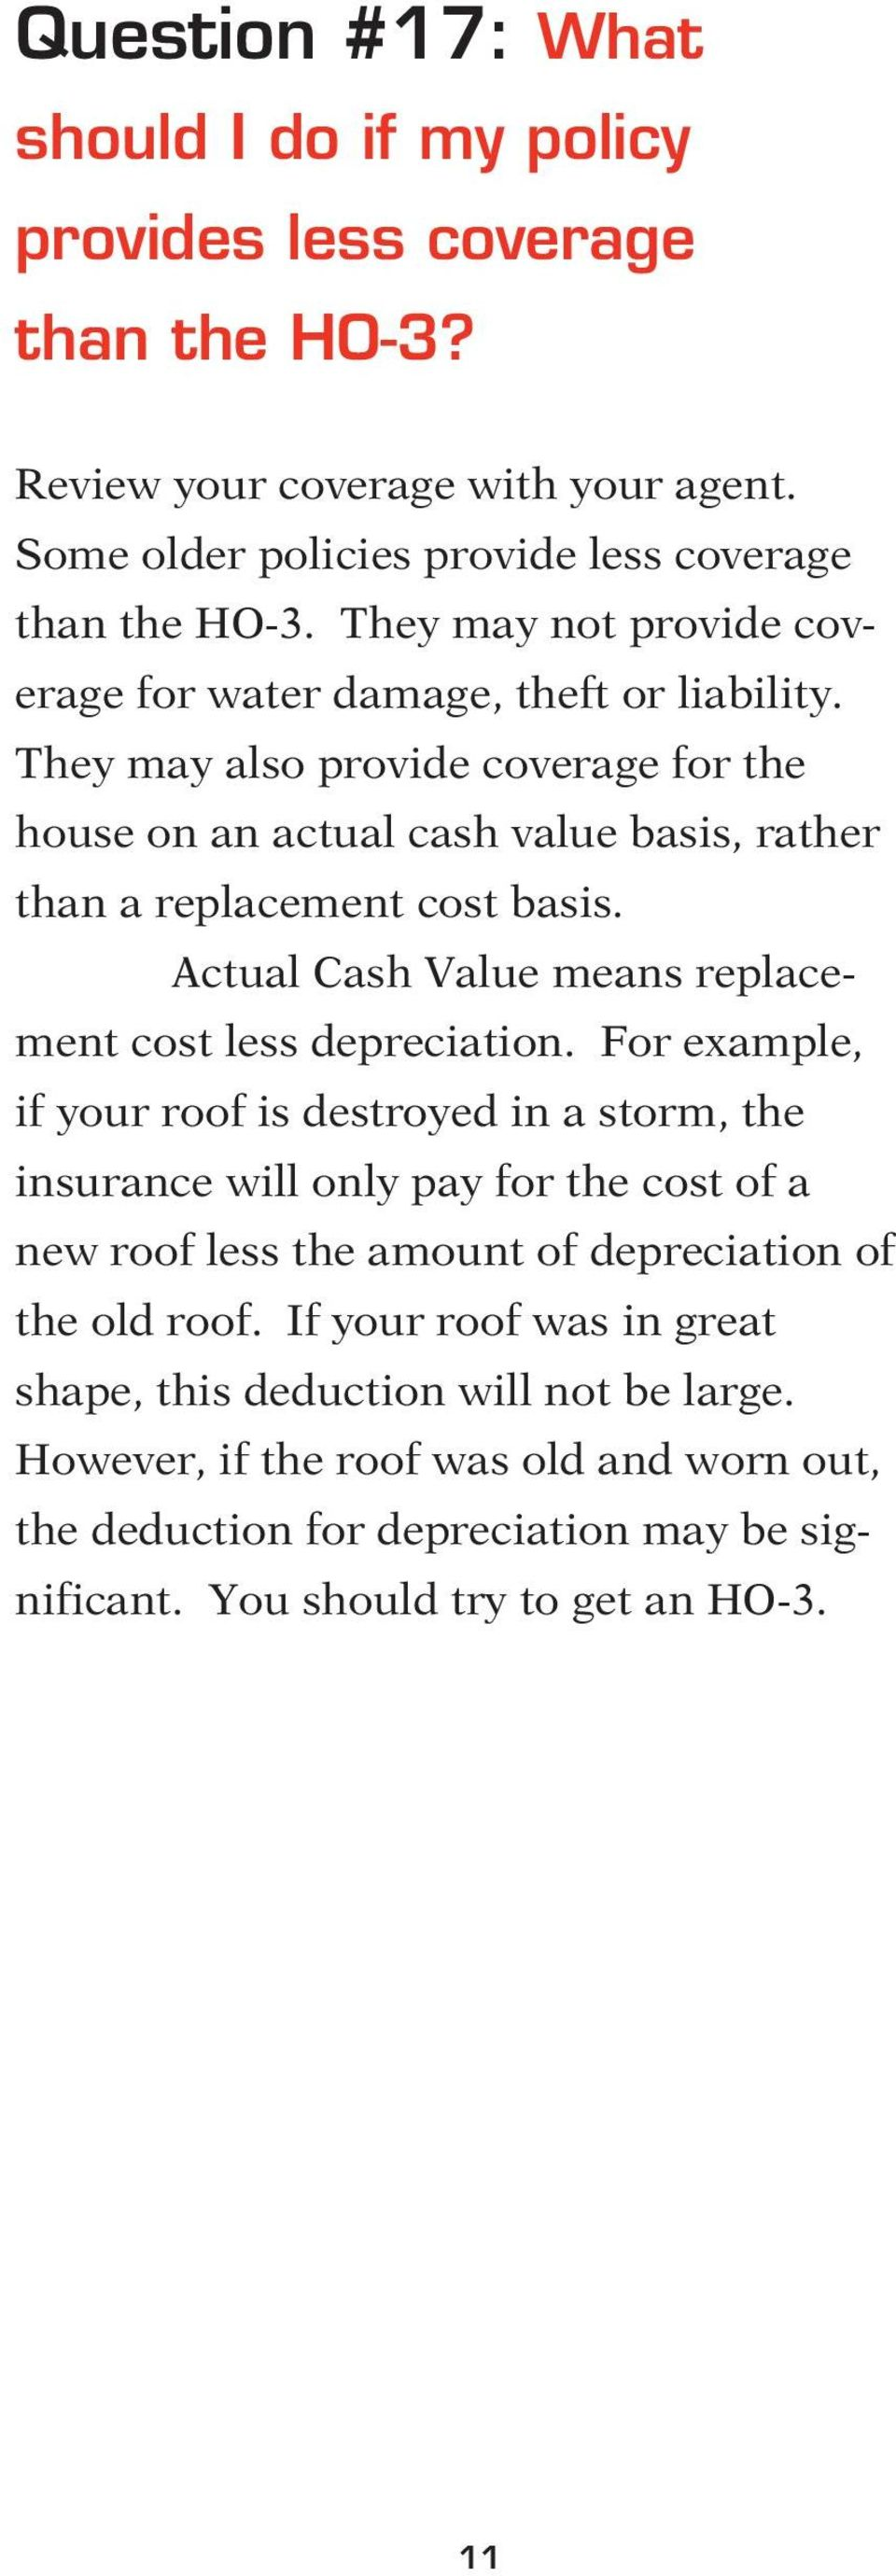 Actual Cash Value means replacement cost less depreciation.